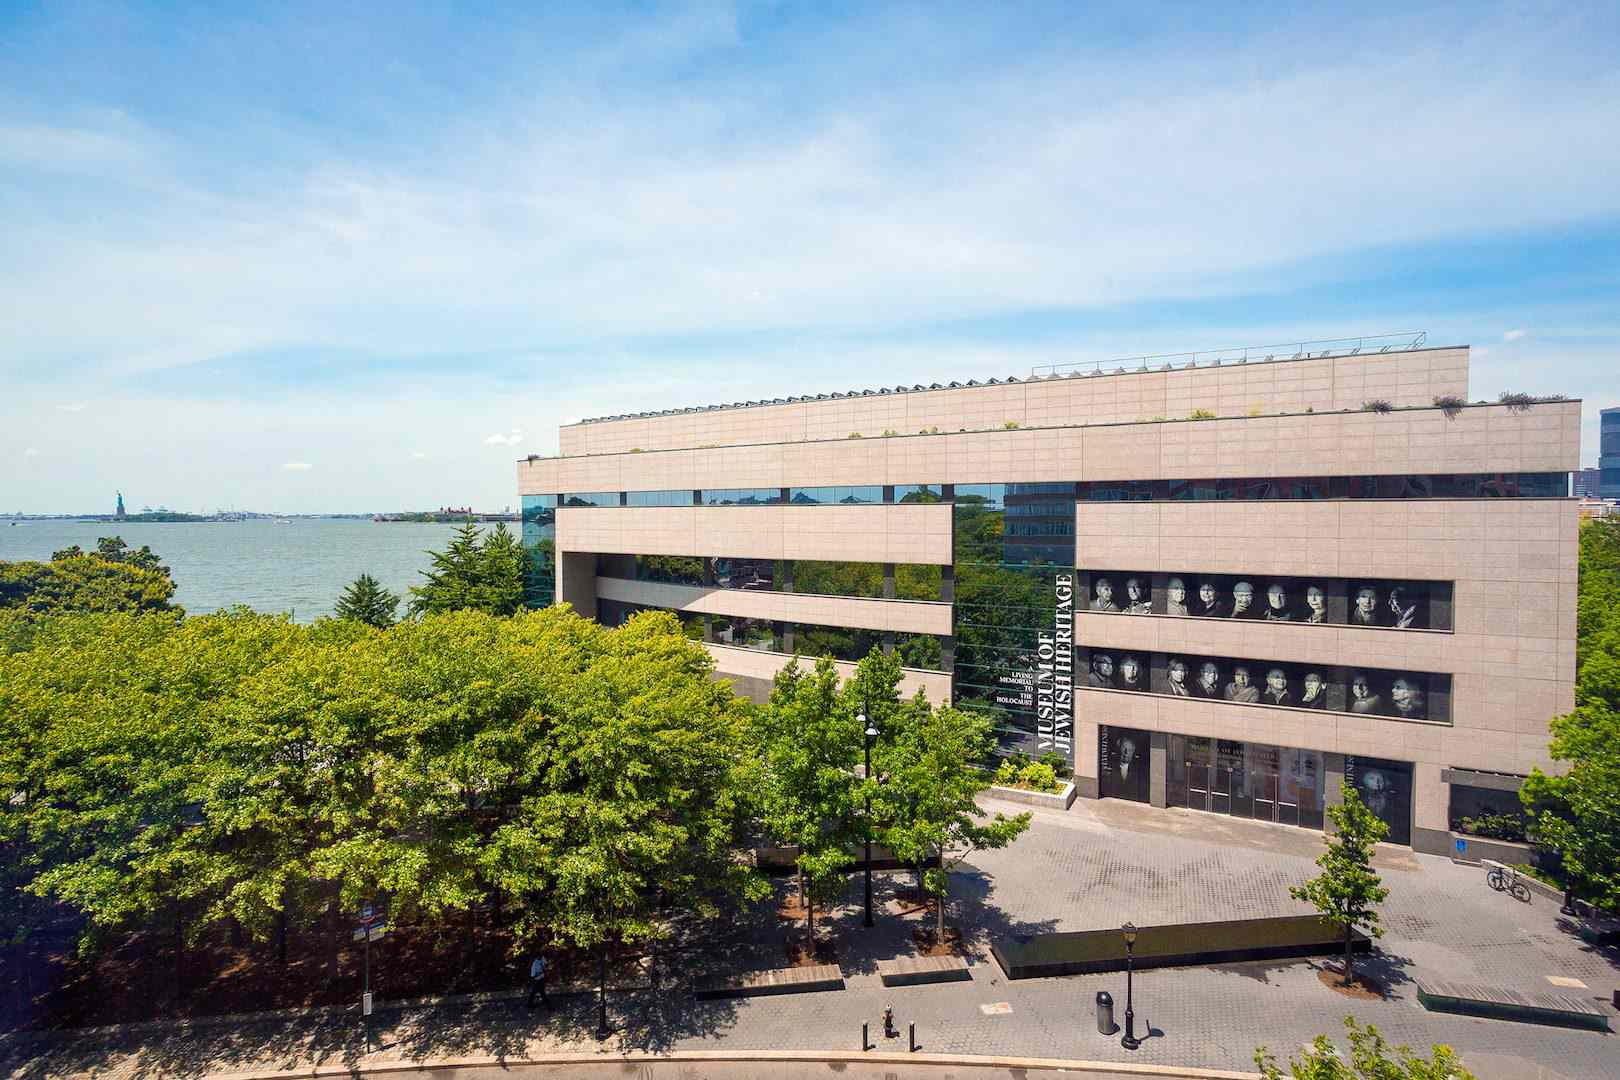 The Museum of Jewish Heritage in Battery Park City